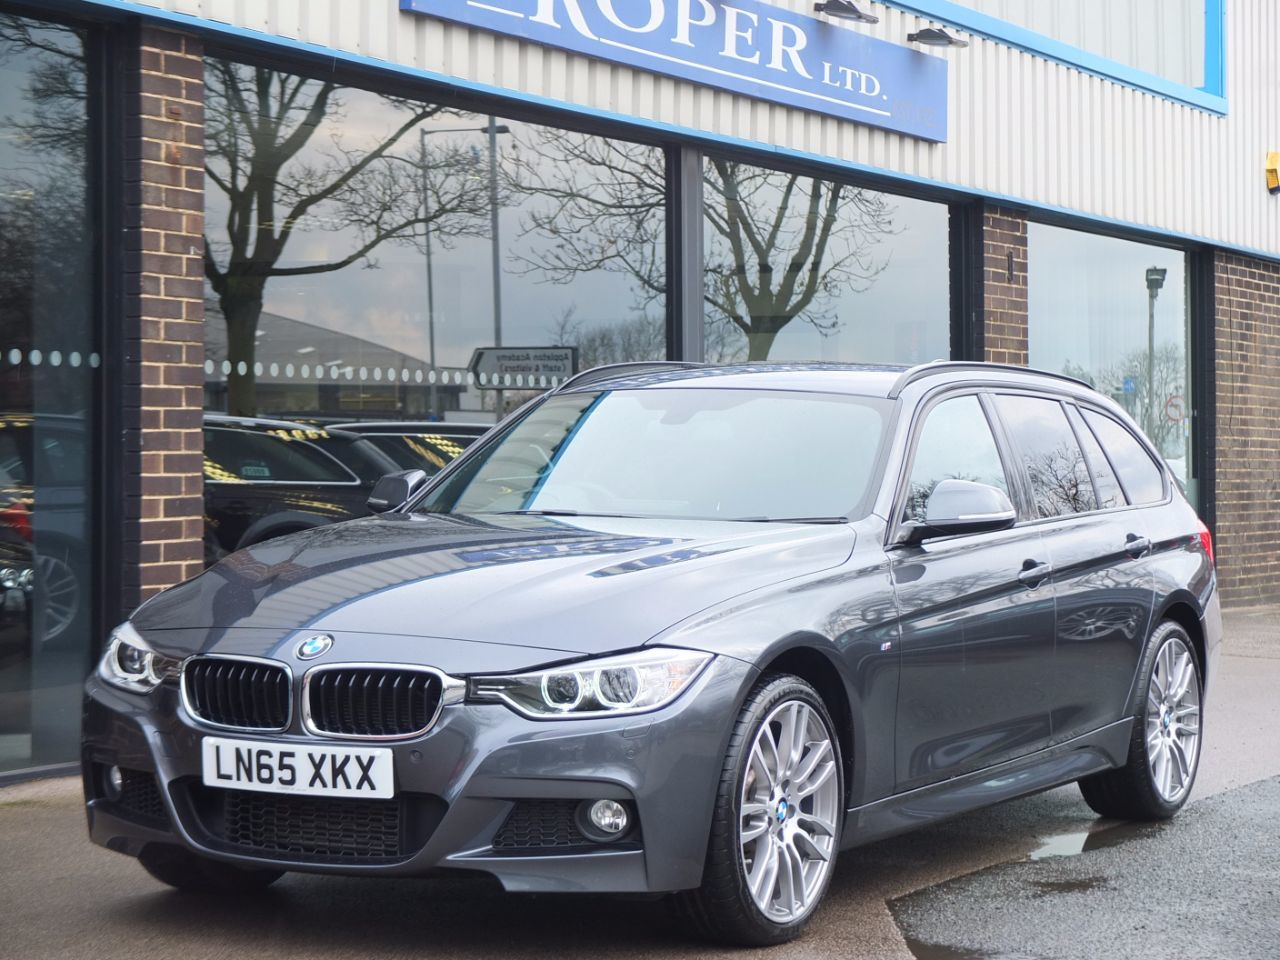 BMW 3 Series 3.0 335d xDrive M Sport Touring Auto Estate Diesel Mineral Grey MetallicBMW 3 Series 3.0 335d xDrive M Sport Touring Auto Estate Diesel Mineral Grey Metallic at fa Roper Ltd Bradford